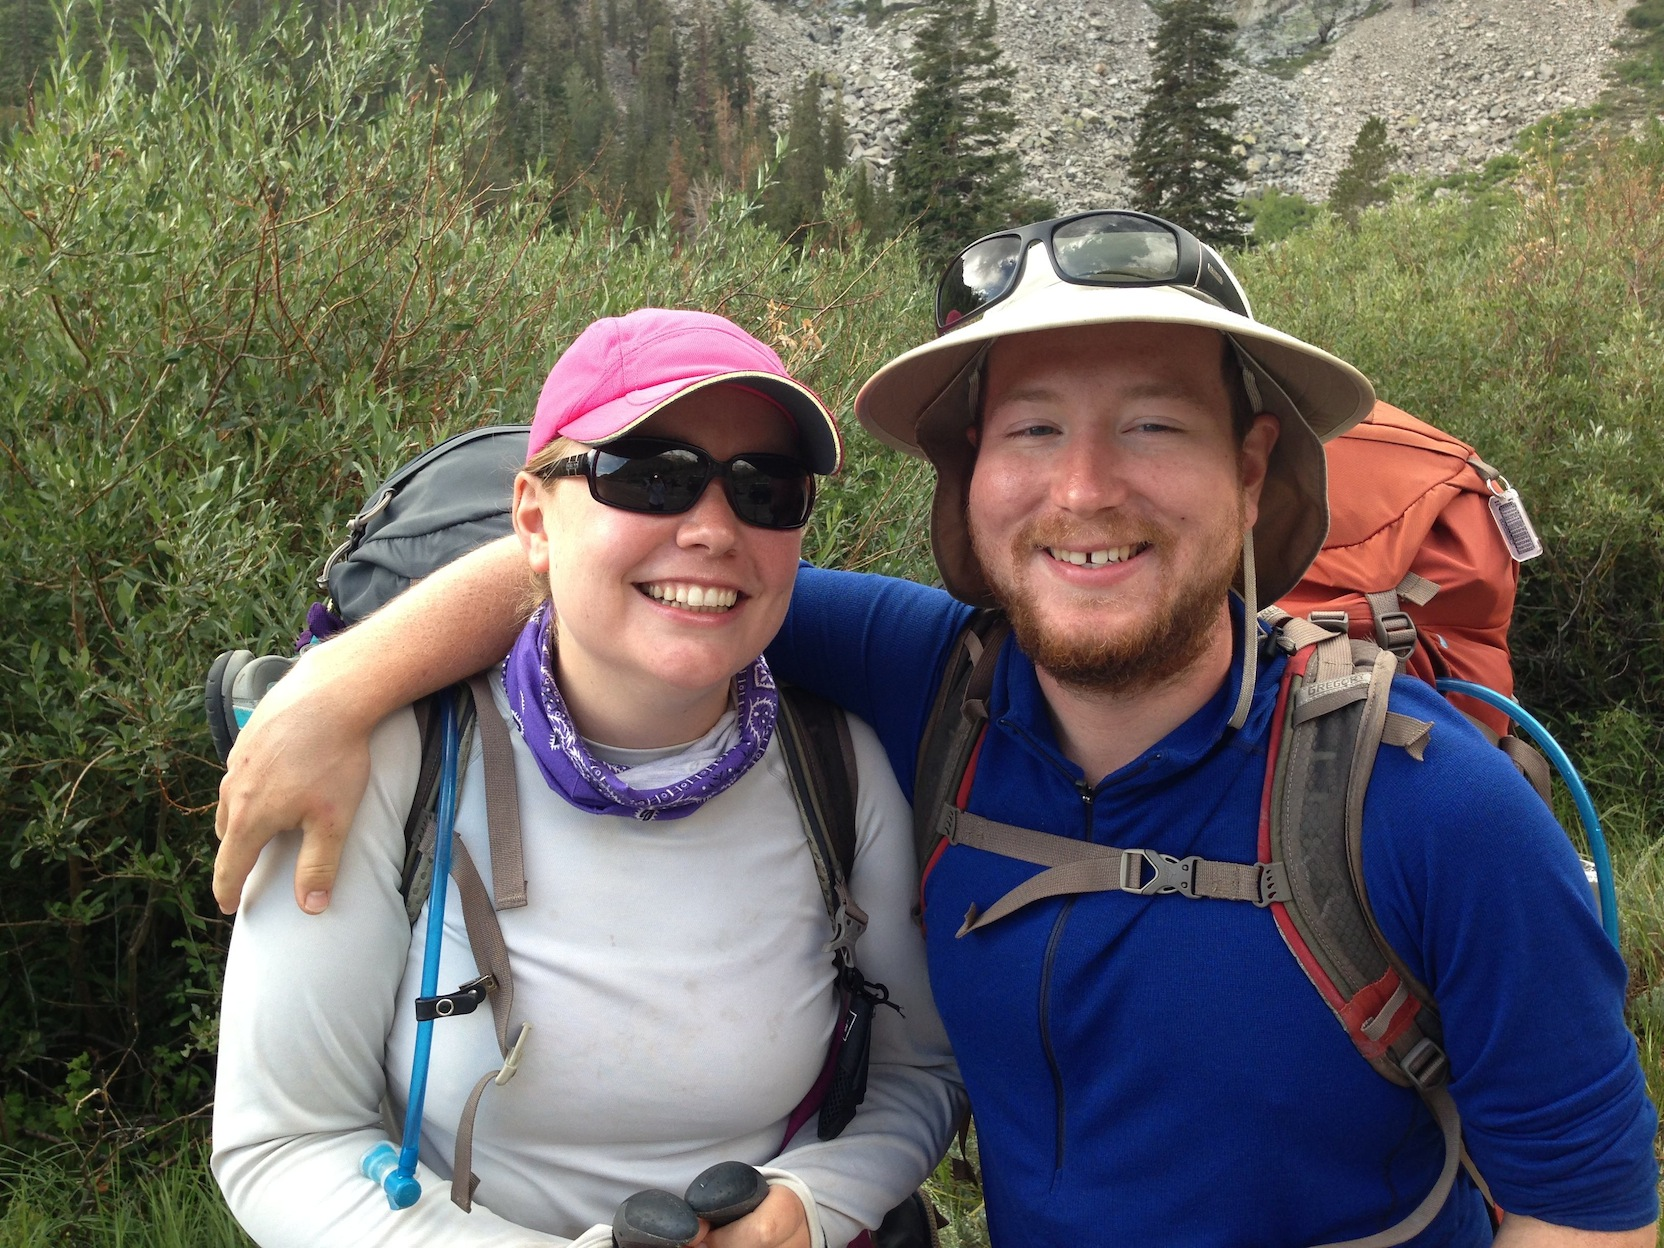 JMY hikers Laura and Andy at Onion Valley